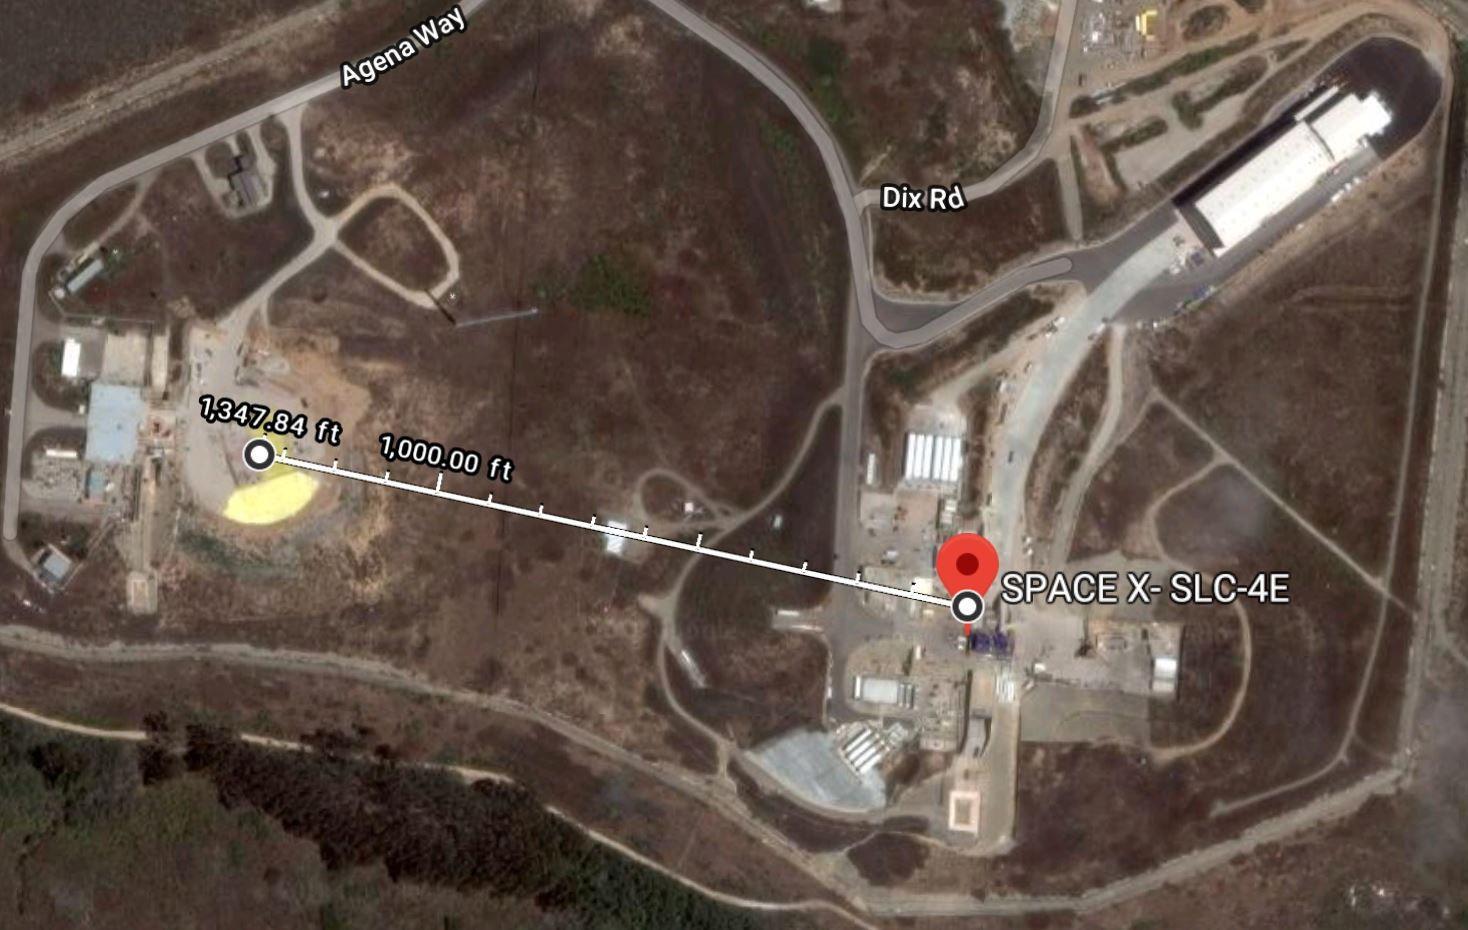 SpaceX SLC-4 launch and landing (Google Maps)